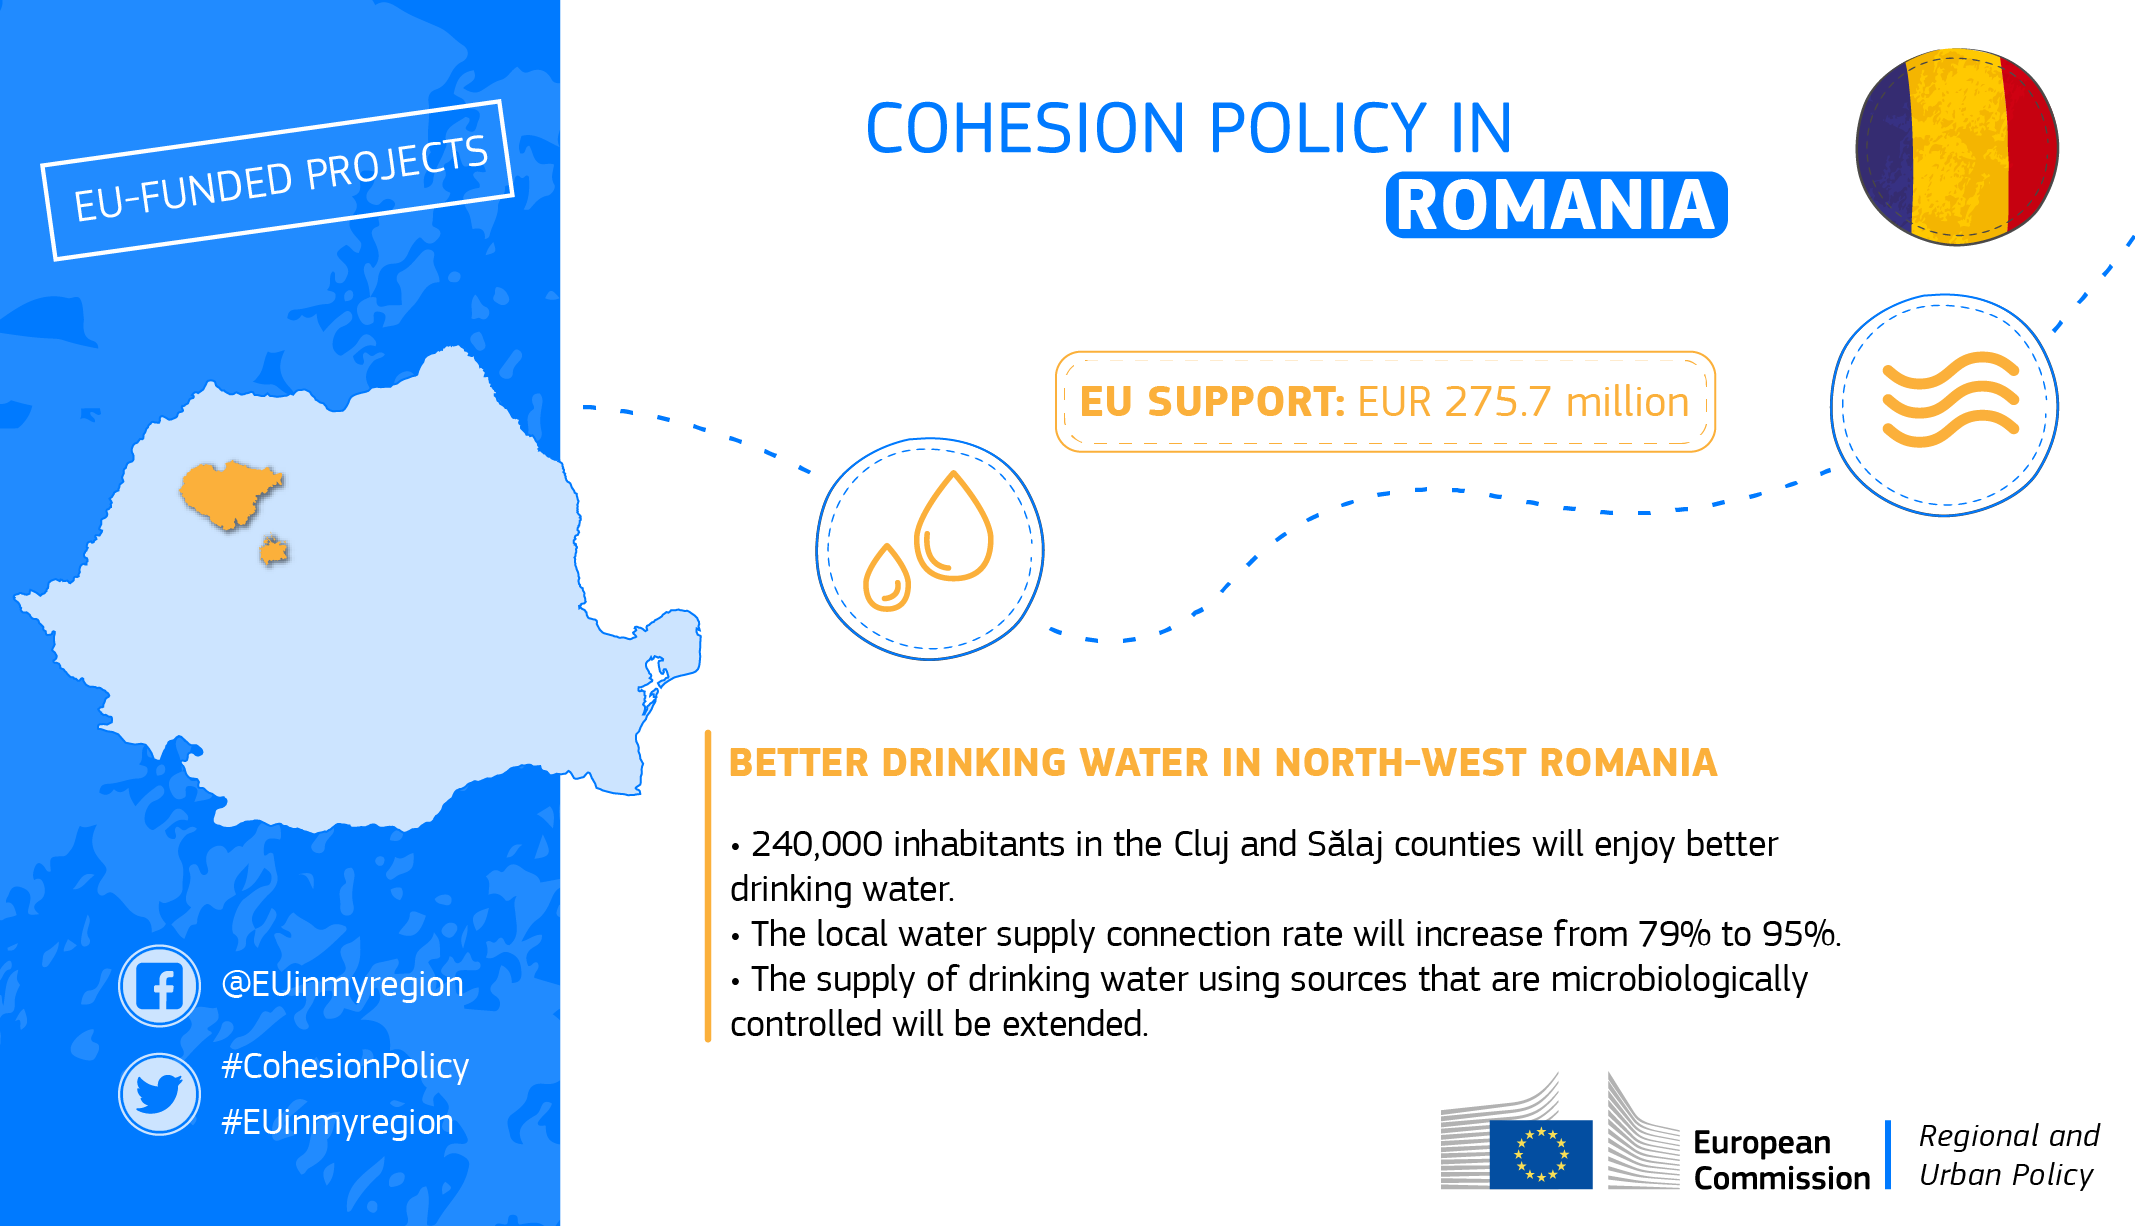 Romania: better drinking water in Cluj and Sălaj thanks to Cohesion Policy